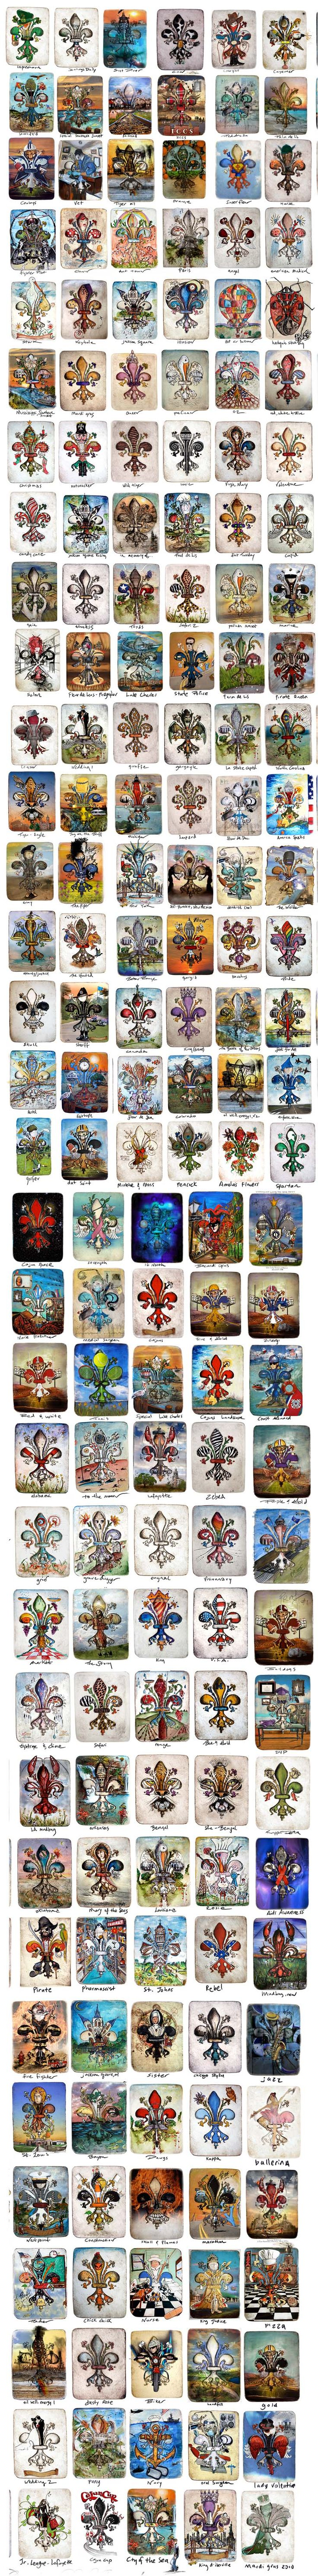 Fabulous collection of fleur de lis prints by Candice Alexander- Fleur de lis for stationeryNorm Caouette